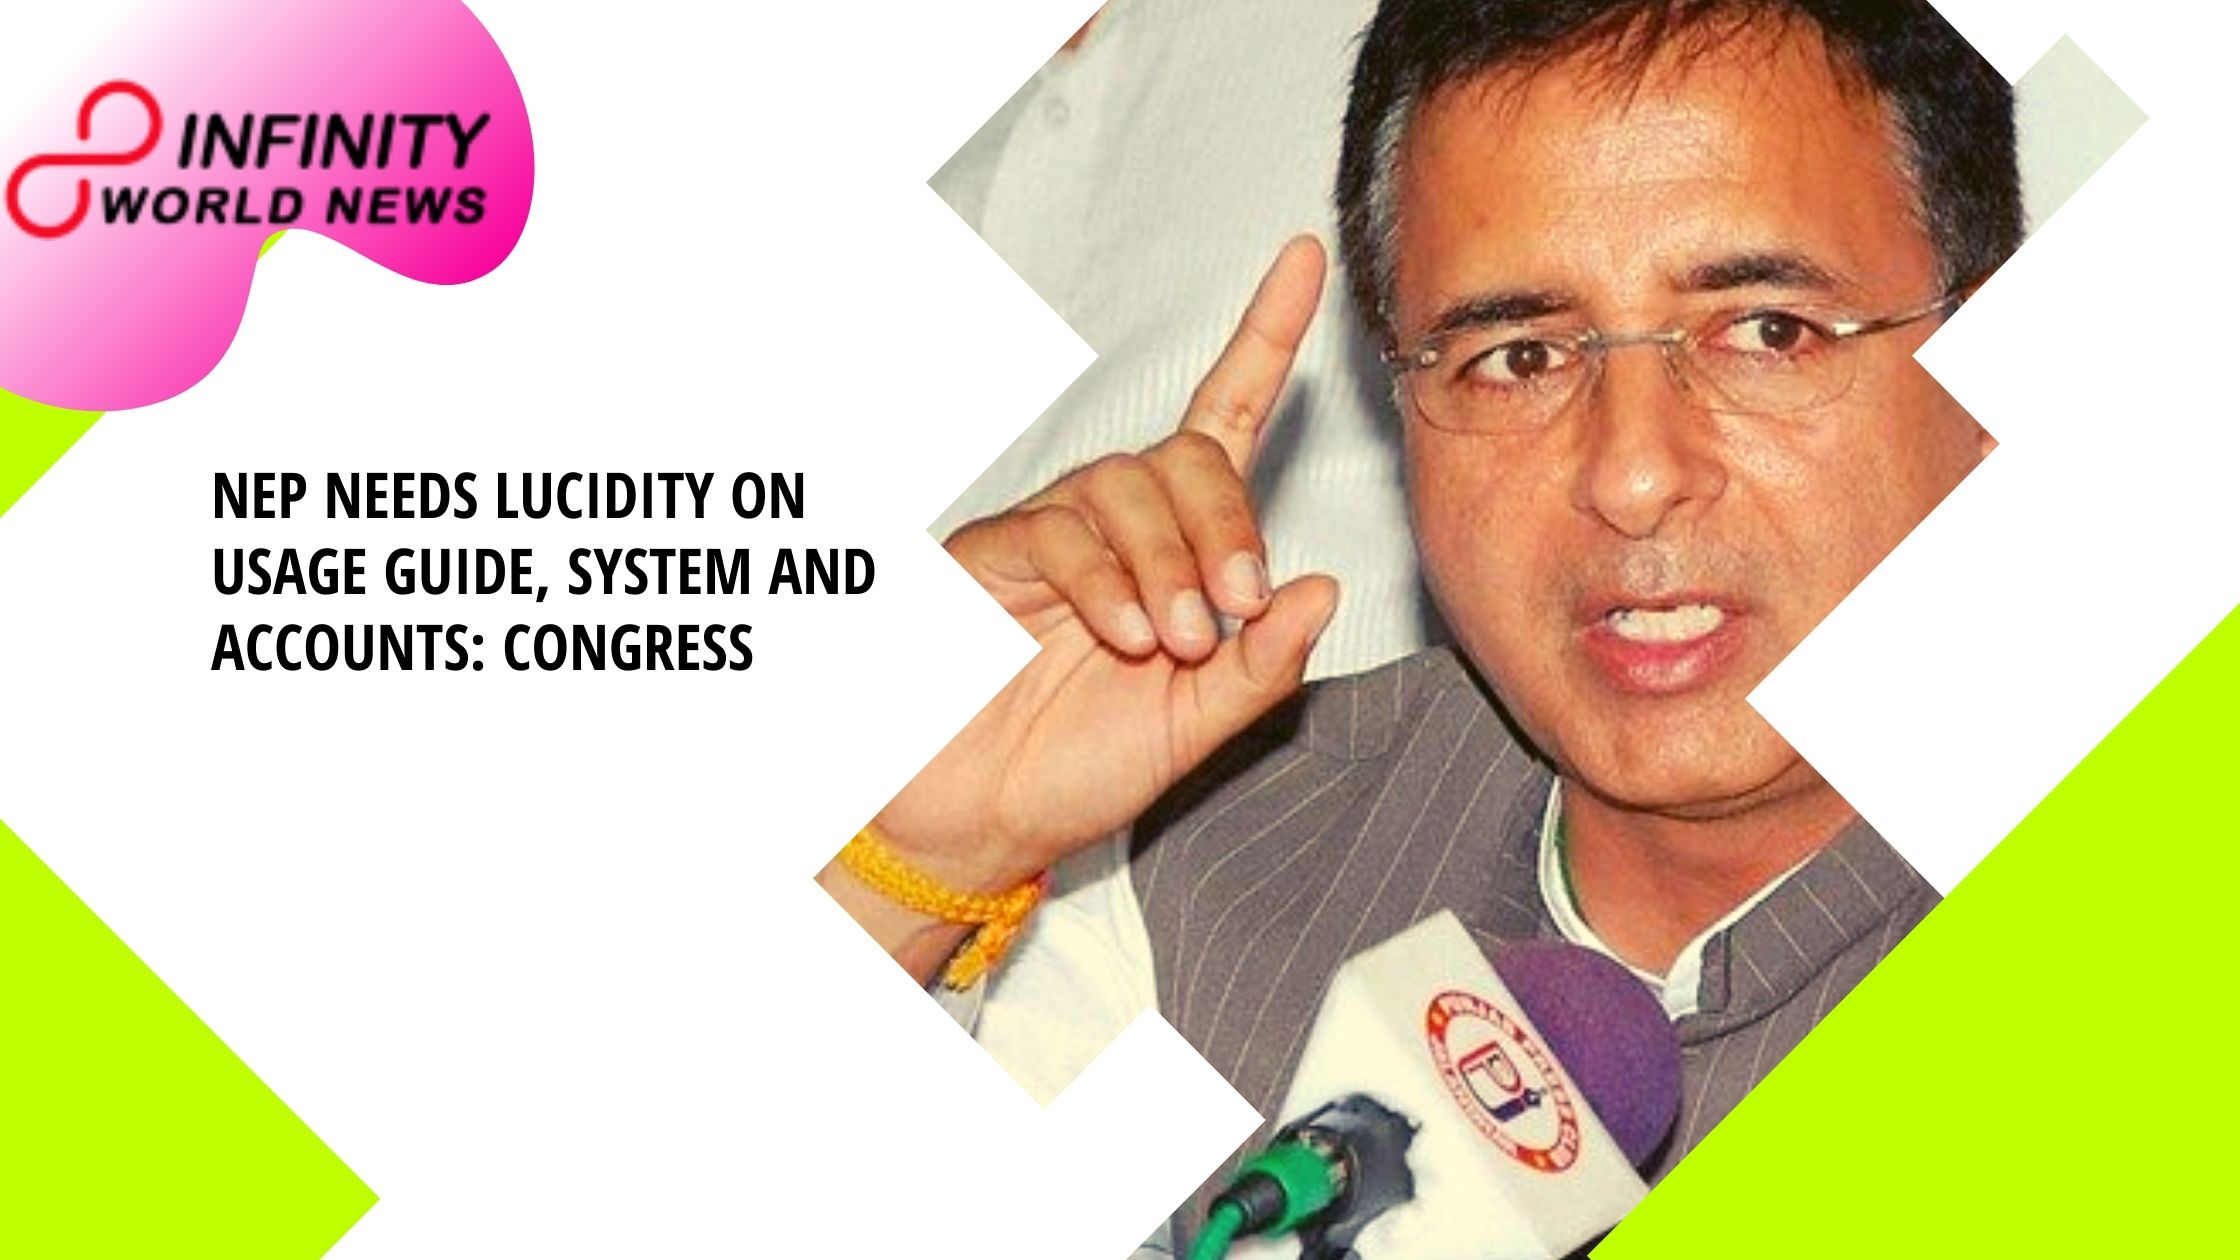 NEP needs lucidity on usage guide, system and accounts_ Congress